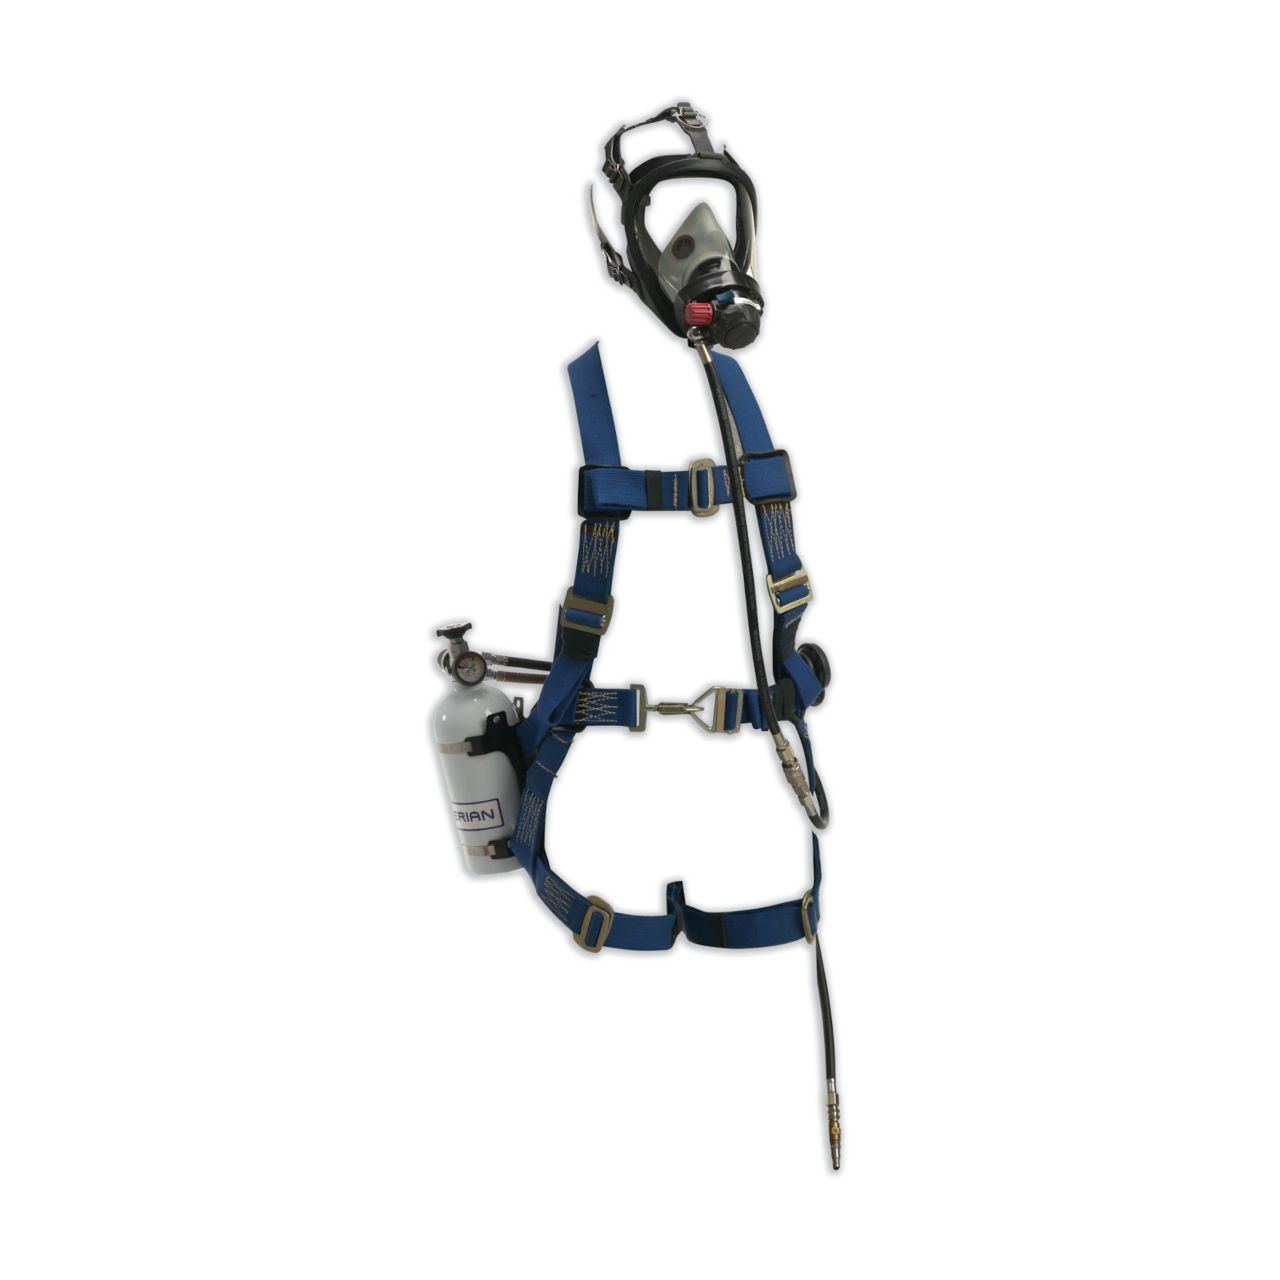 HS_pressure_demand_sar_with_escape_cylinder_hon_resp_sar_hip-pac_harness_front_963103